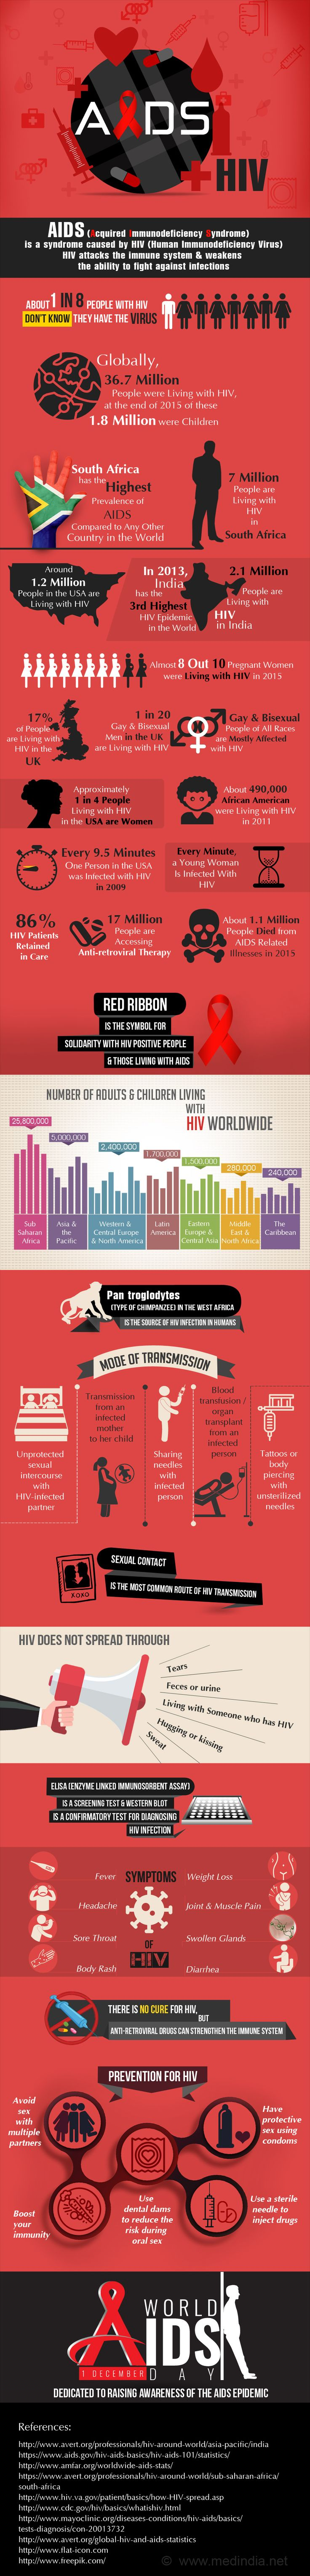 Infographic on AIDS/HIV